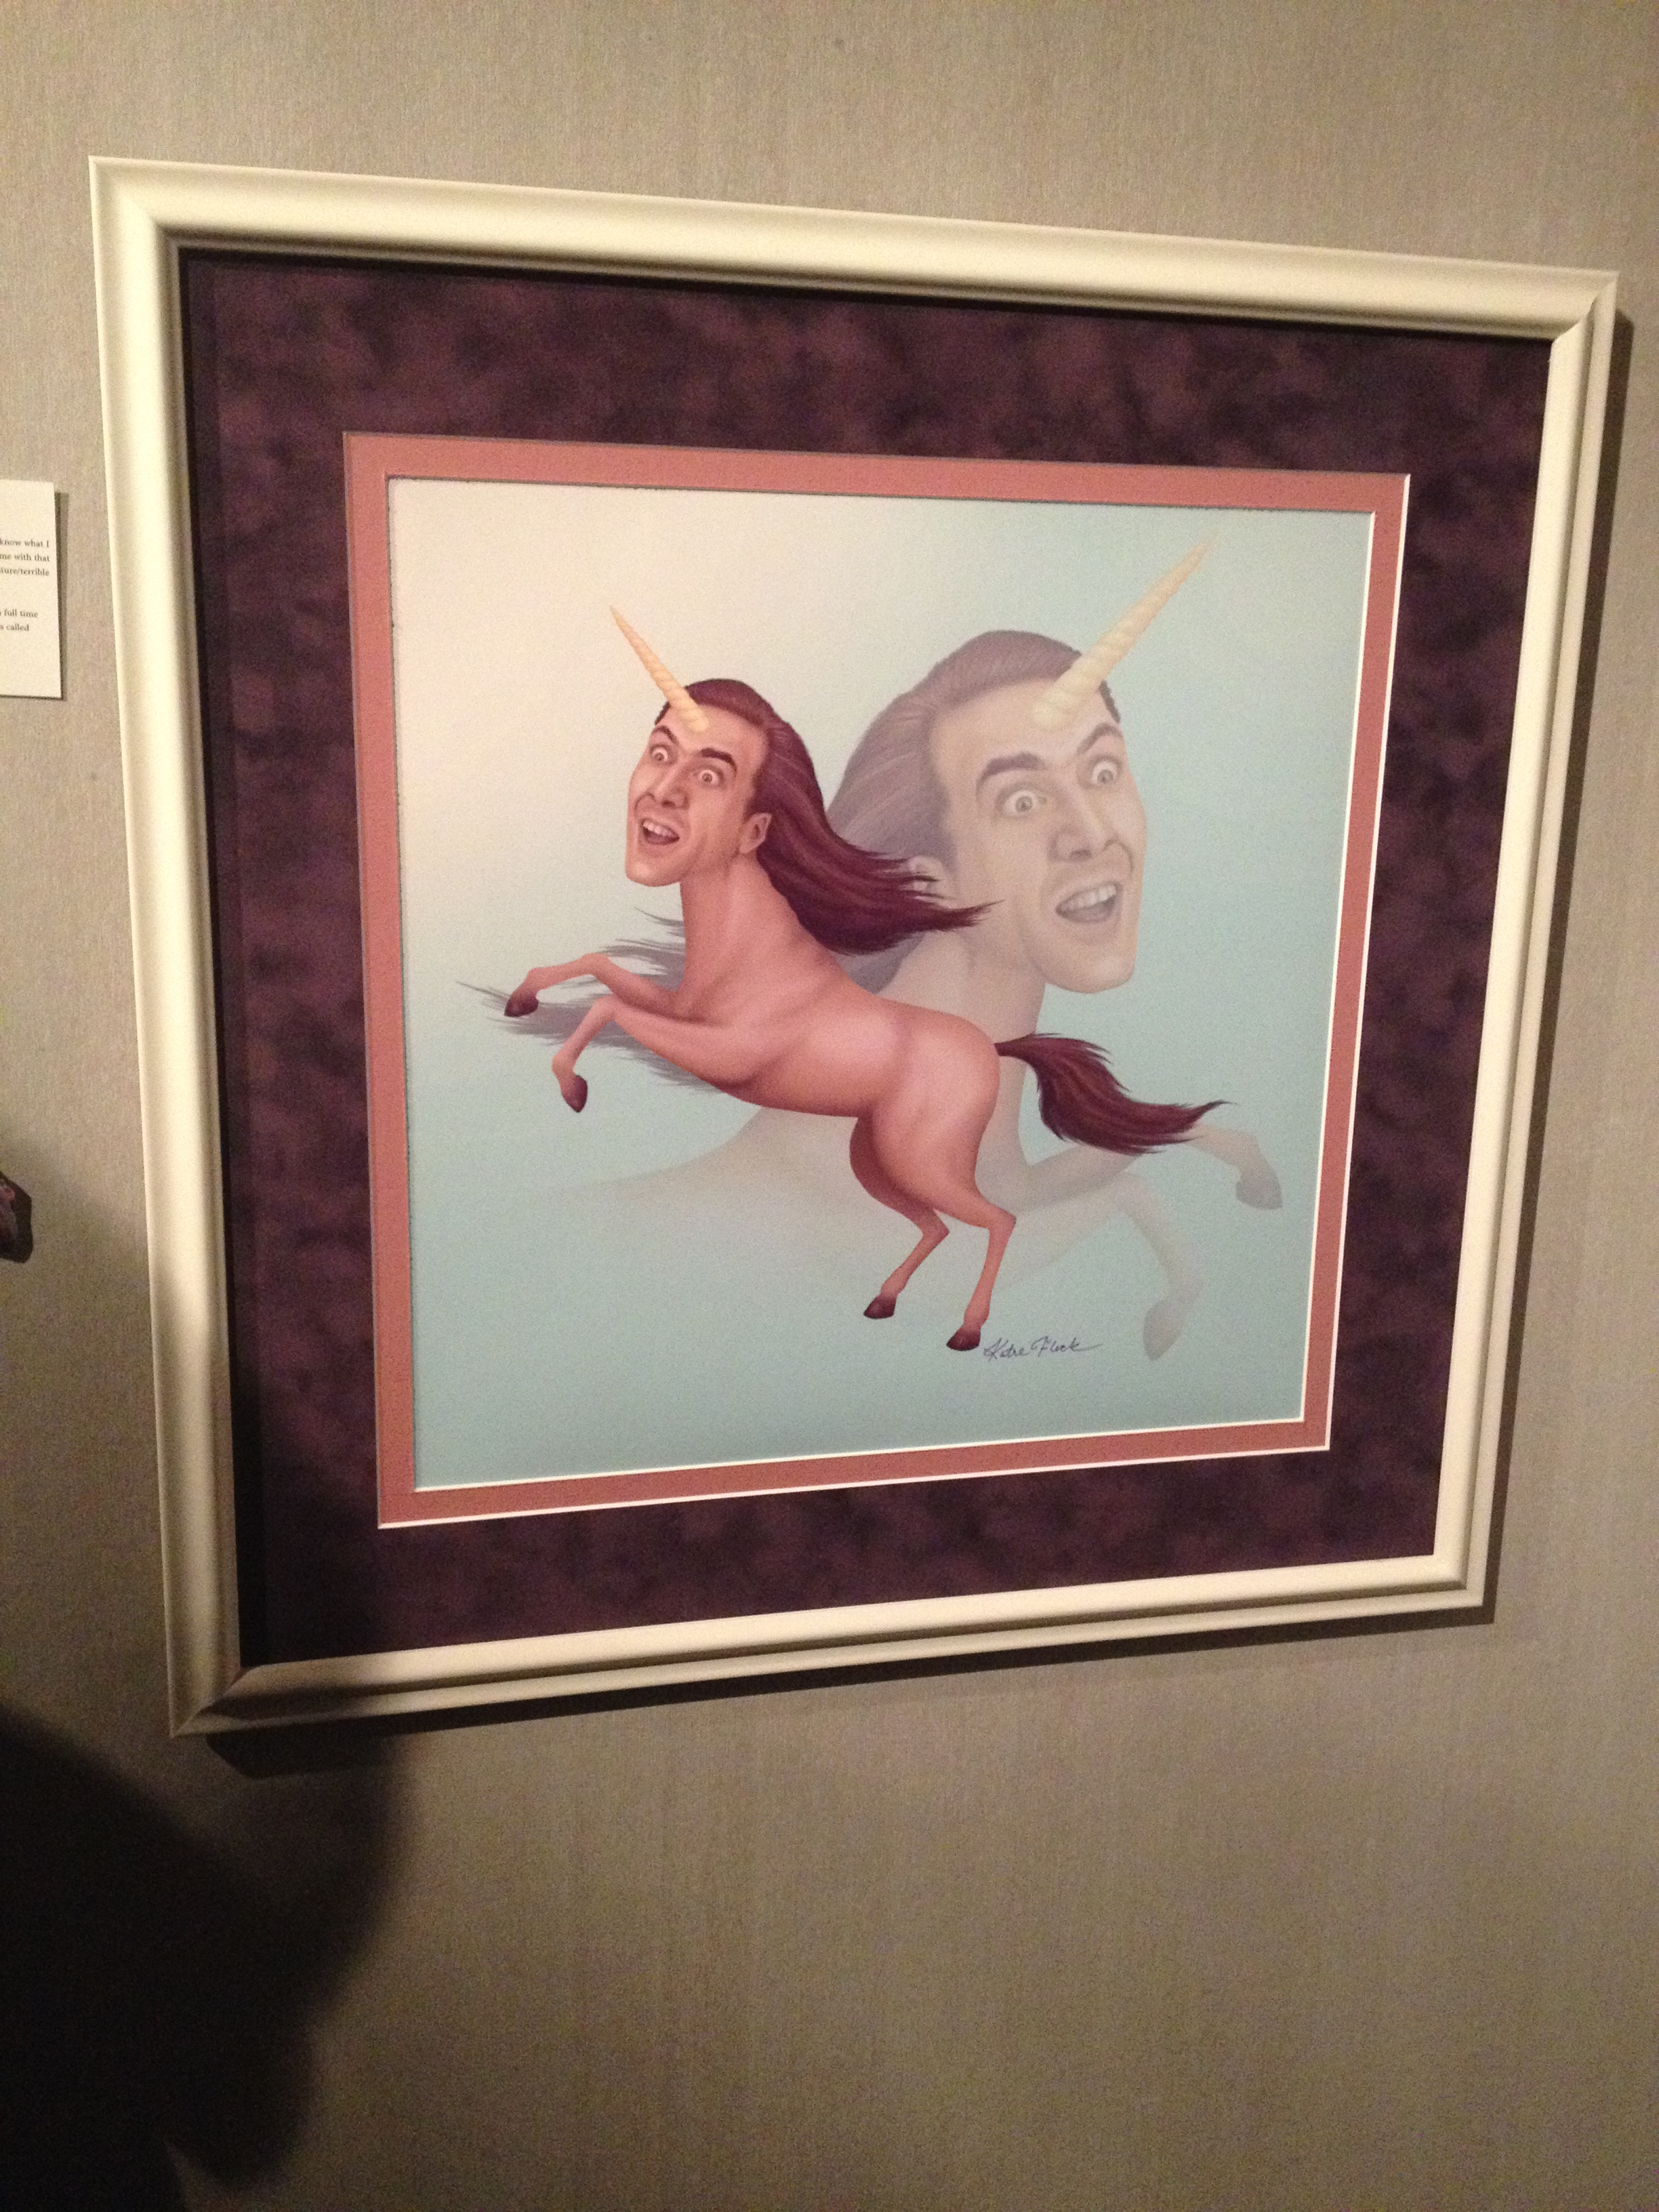 Oh, did I forget to tell you I went to a Nicolas Cage Art Show? This was the result.